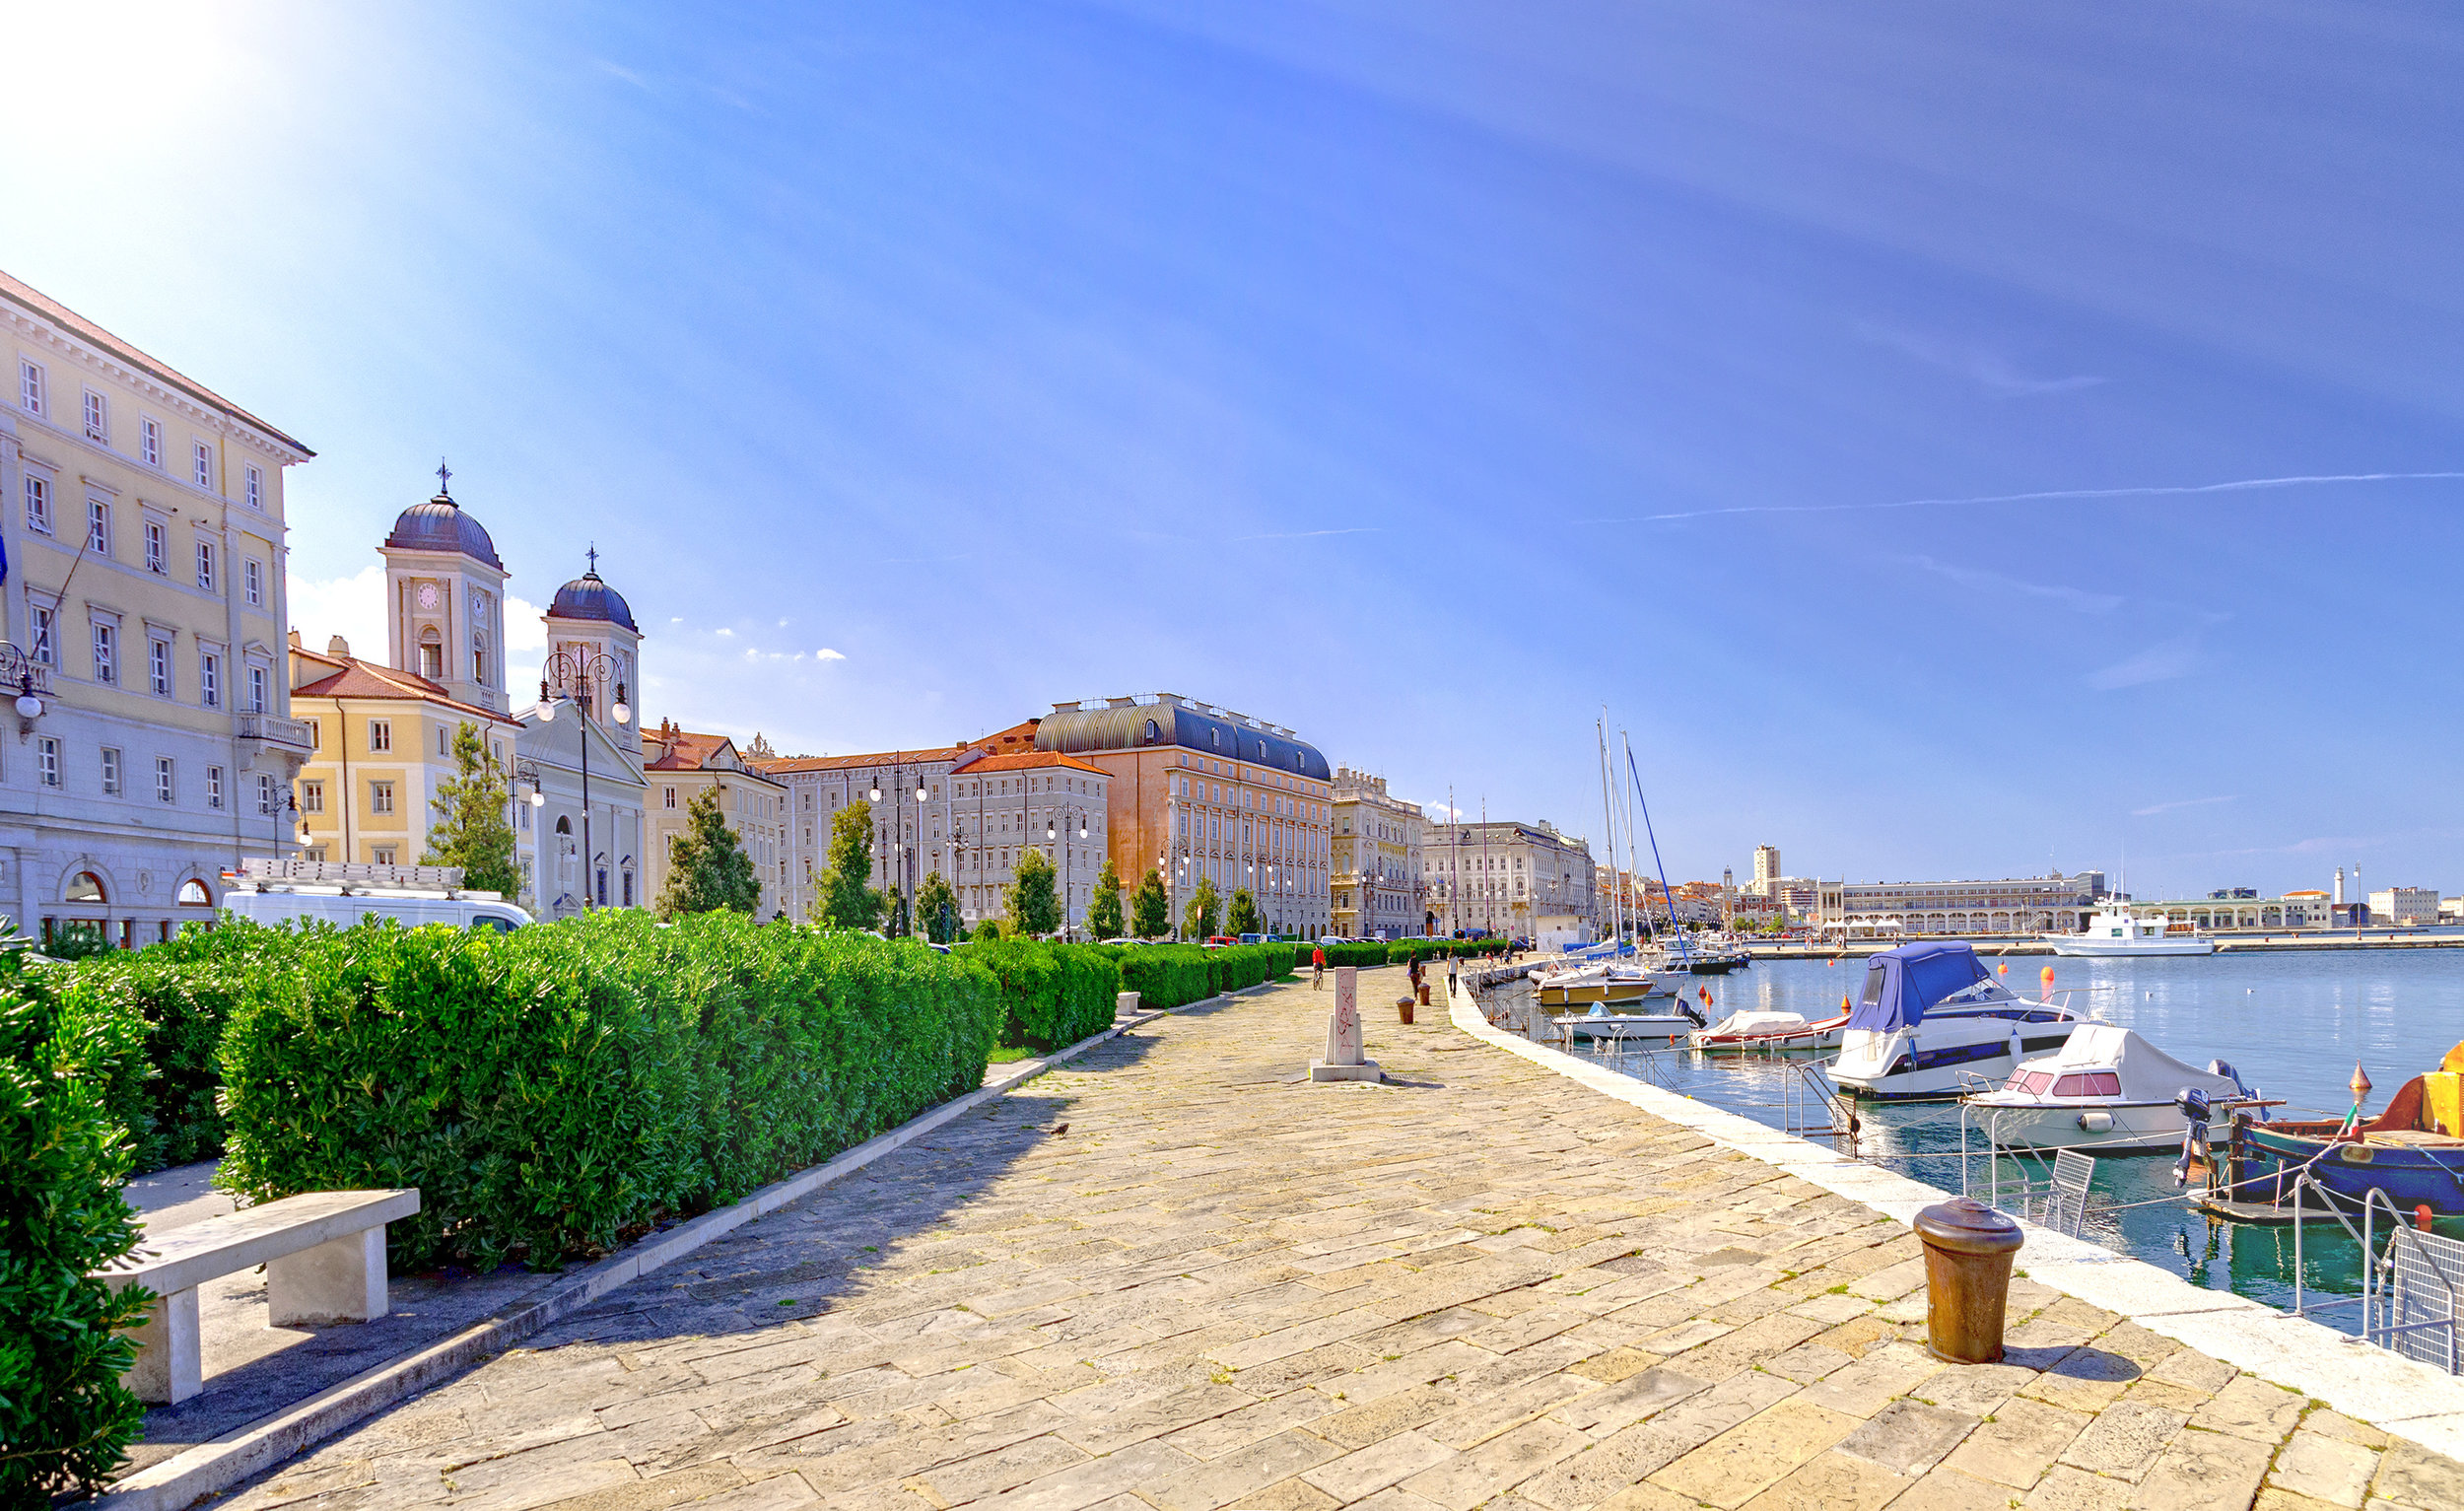 Trieste Italy by Adriatic sea